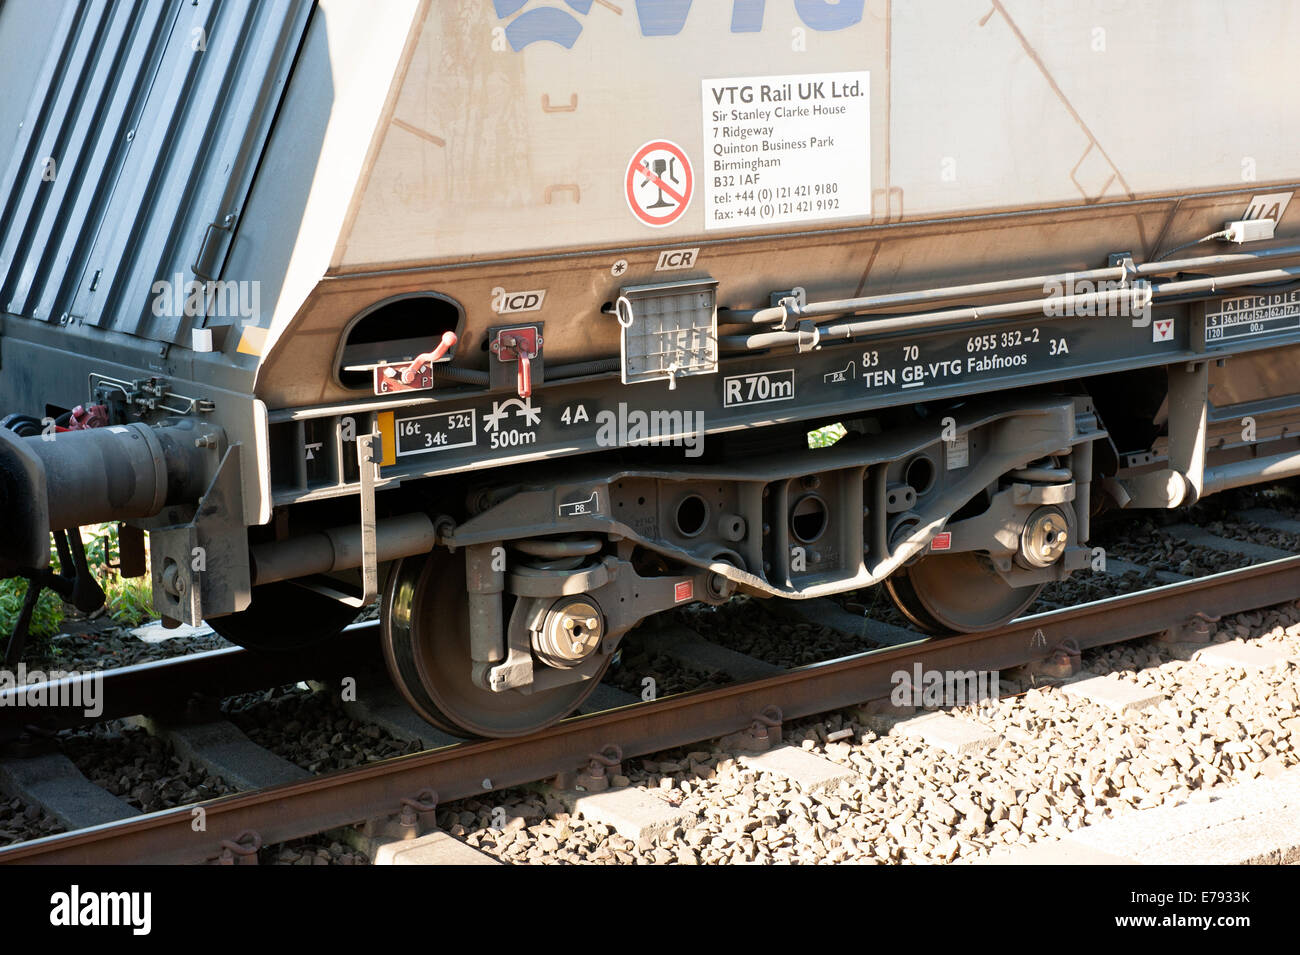 Freight Train Wheels Brakes Bogie Undercarriage - Stock Image